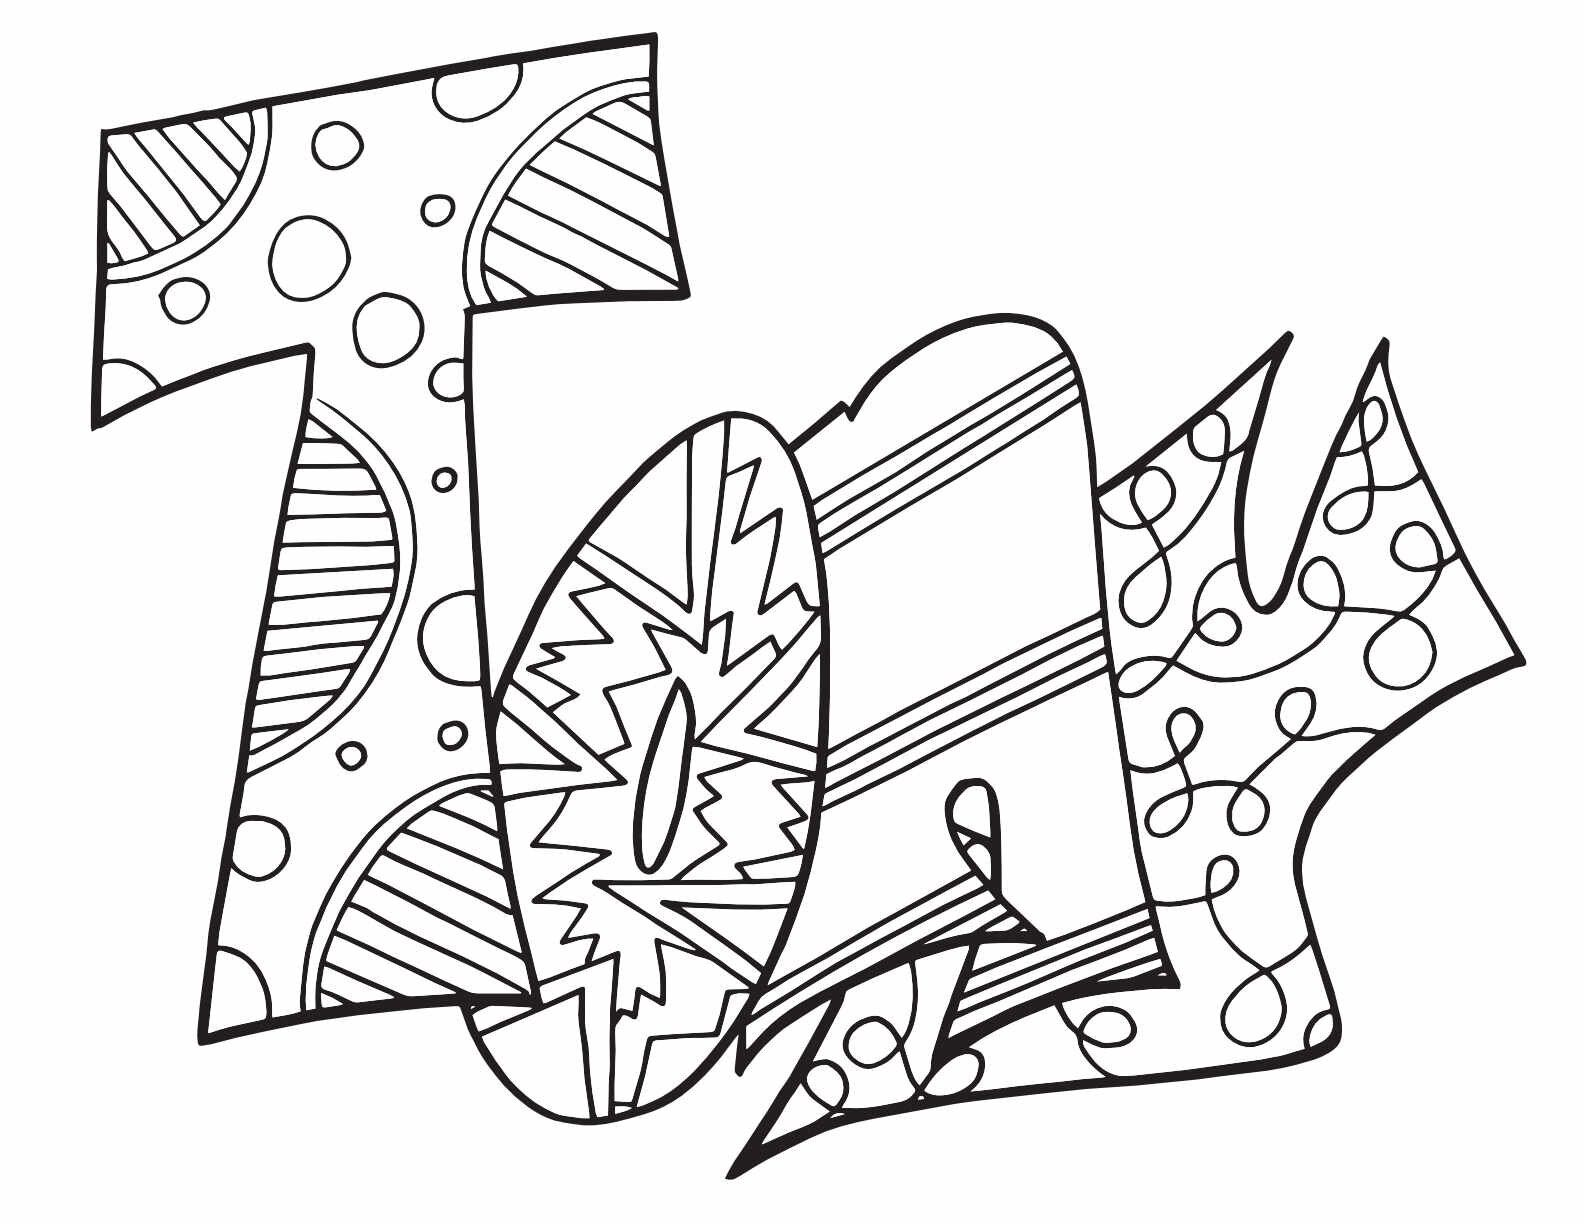 Marvel Names Free Coloring Pages Stevie Doodles Name Coloring Pages Coloring Pages Free Coloring Pages